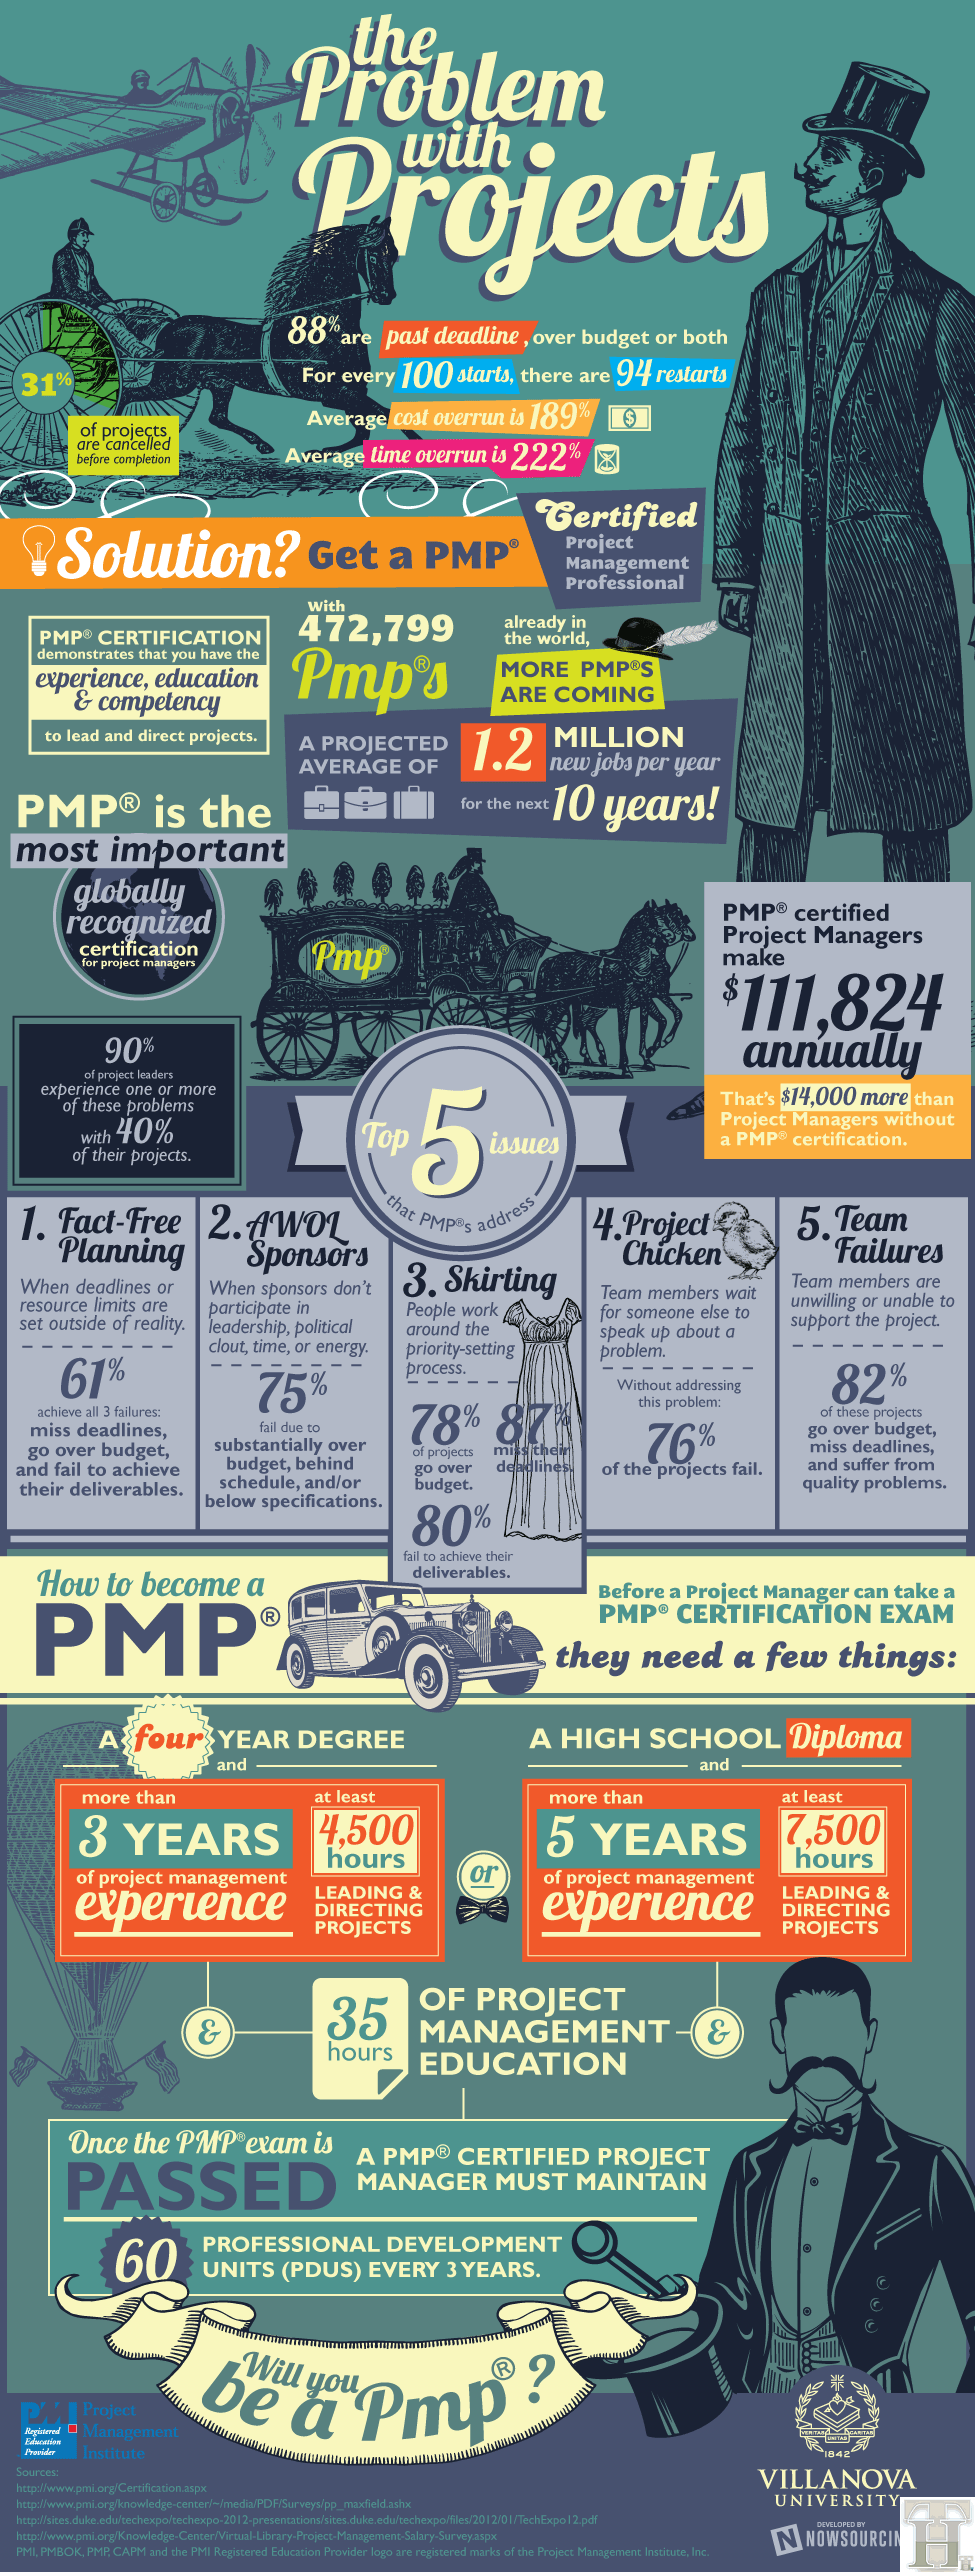 All about PMP: Project Management Professional